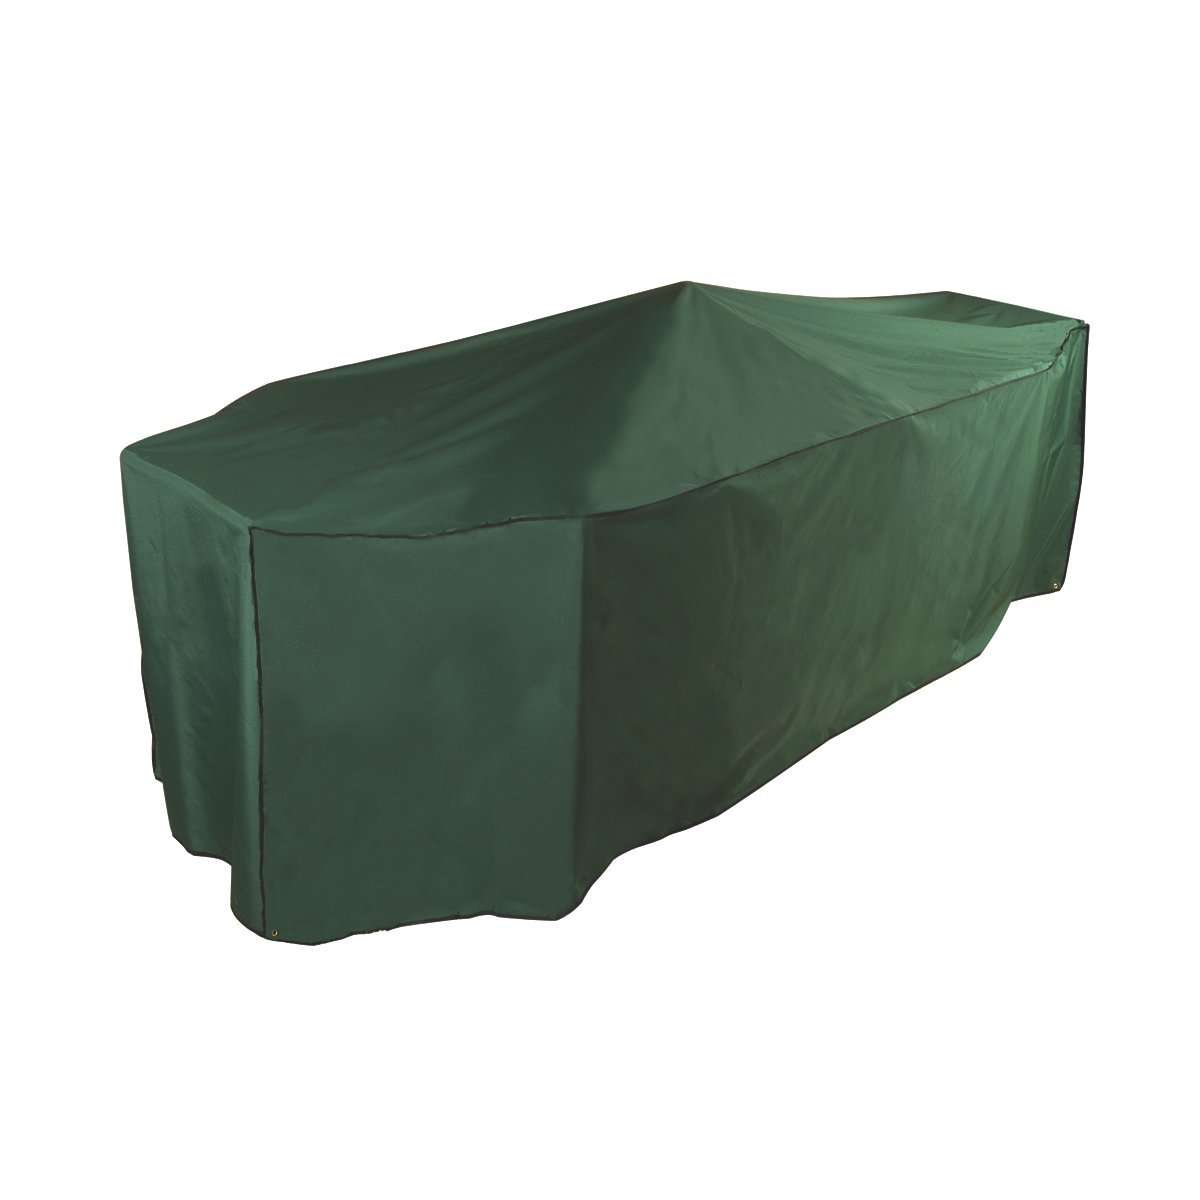 Bosmere P036 Premier 8/10 Seat Rectangular Patio Set Green Cover Bosmere Products Ltd